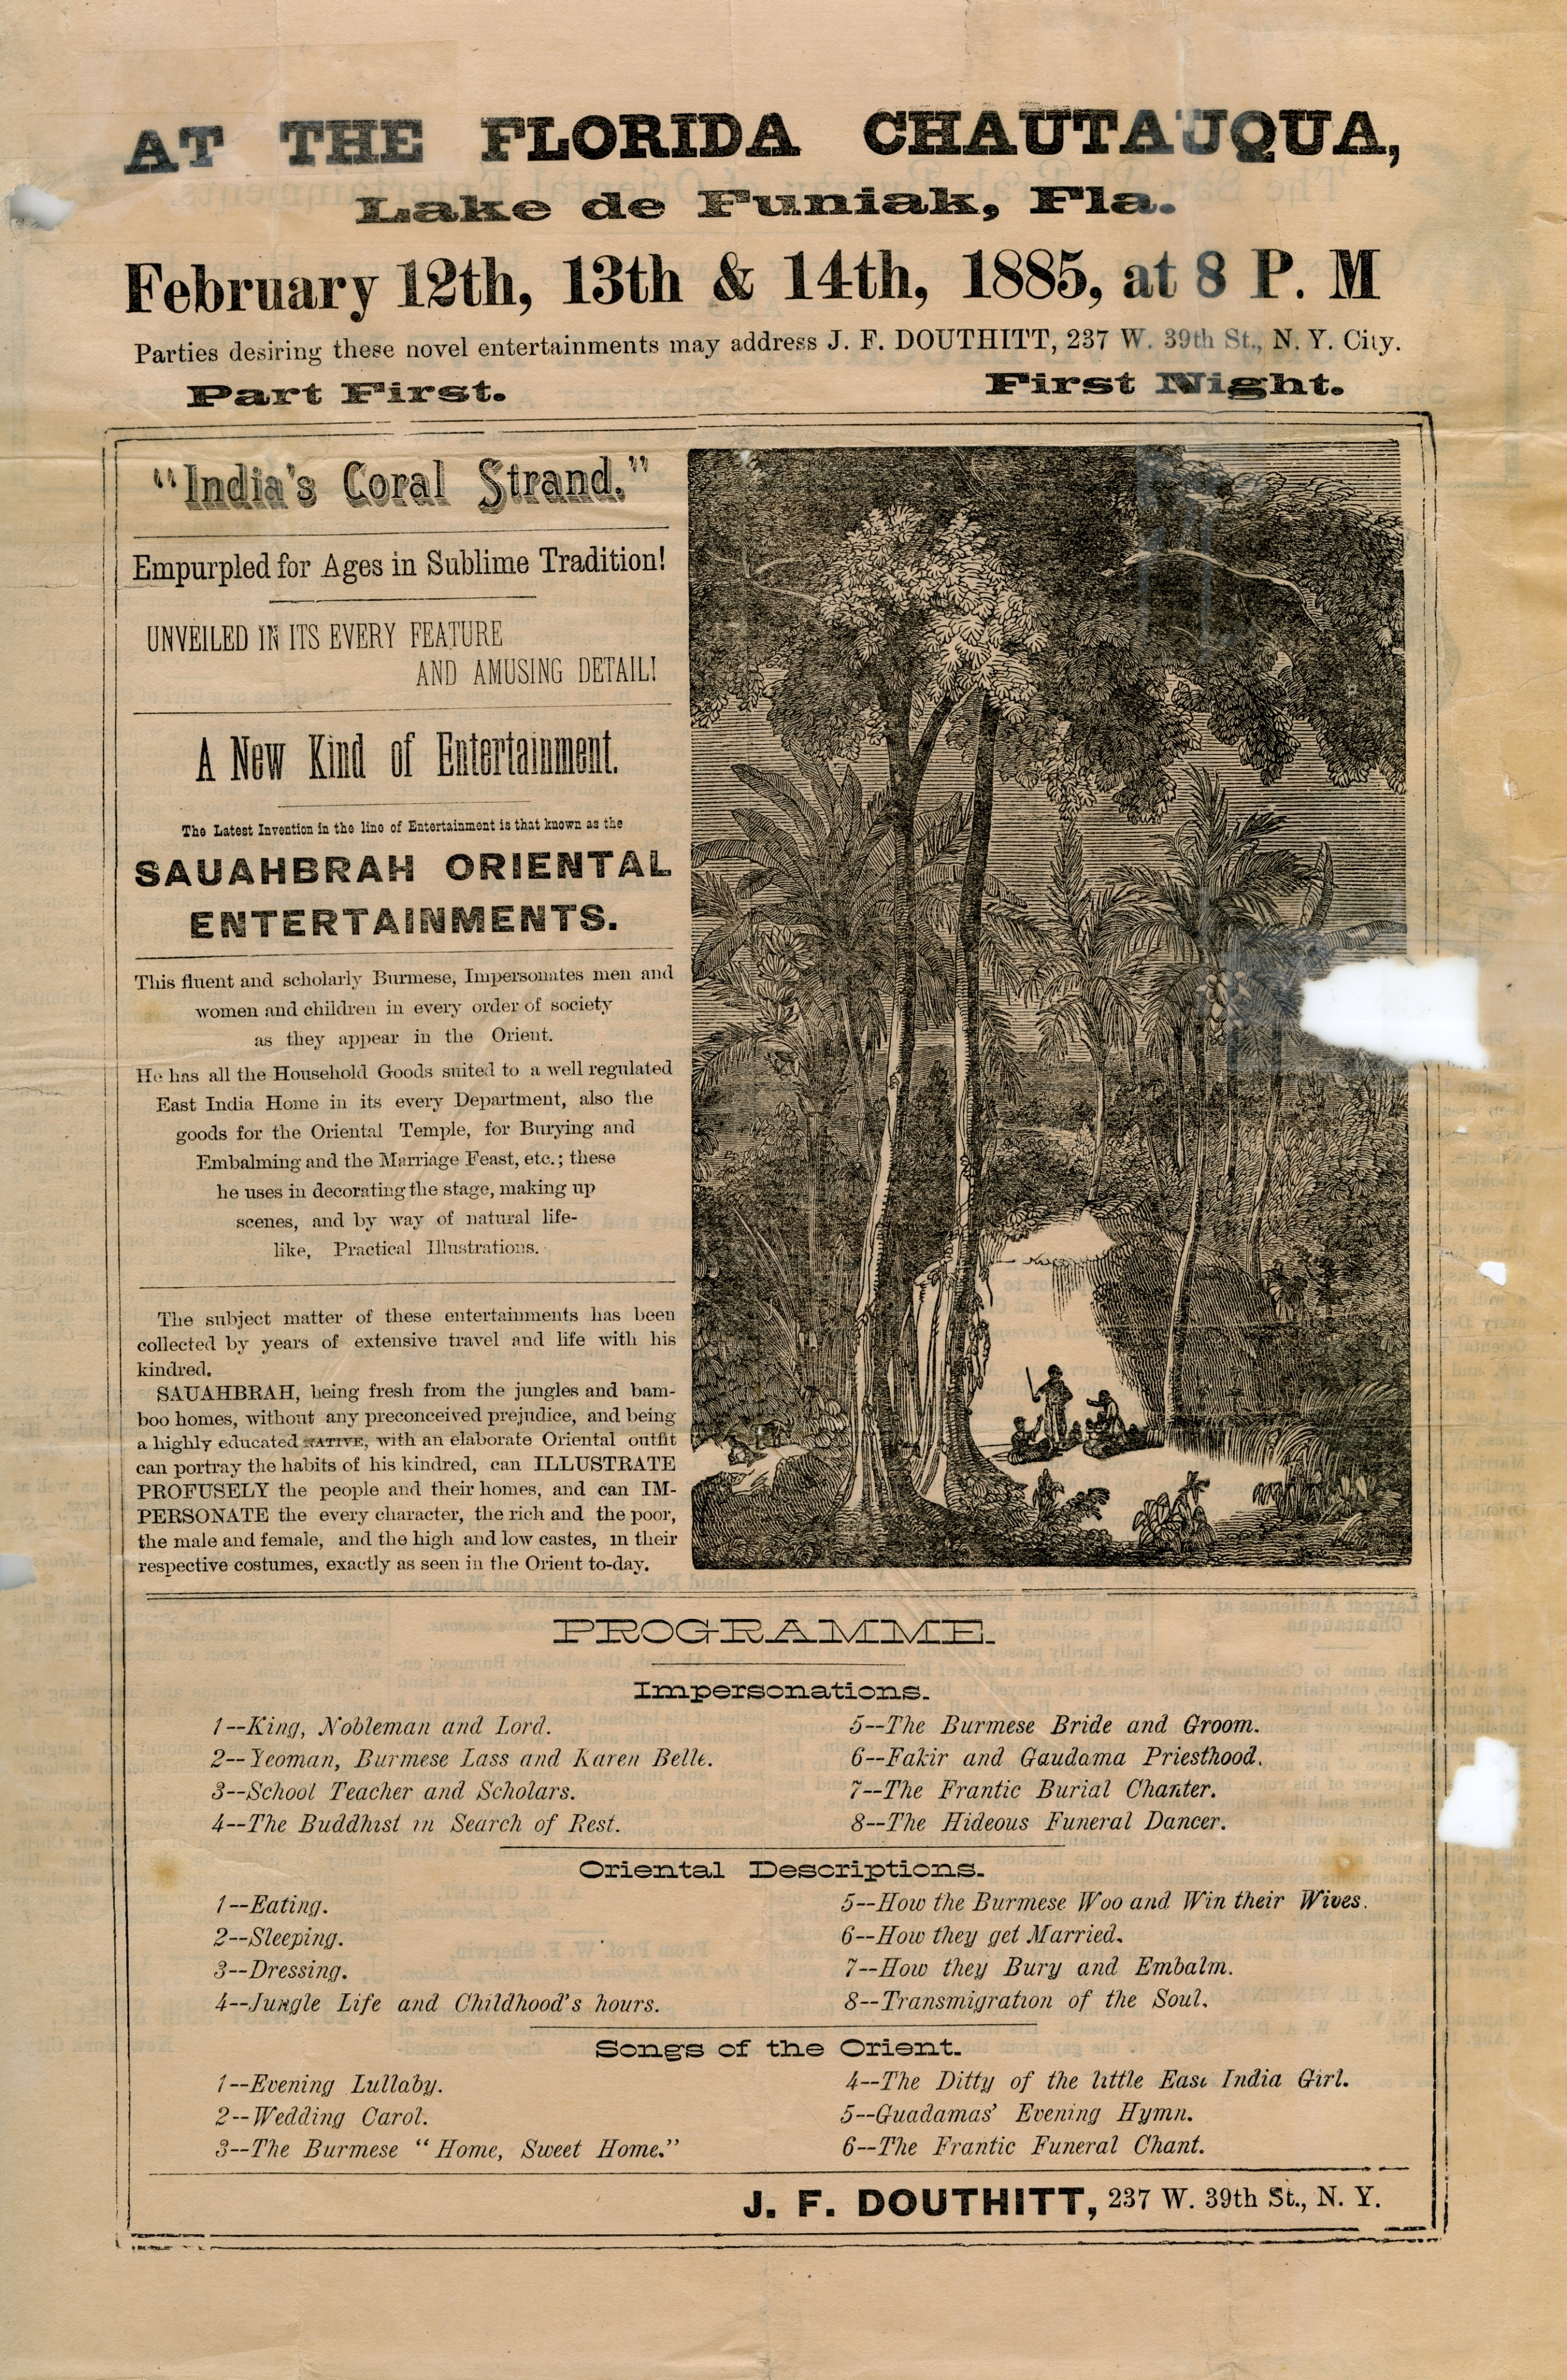 A handbill describing the program for a chautauqua event at DeFuniak Springs (1885).